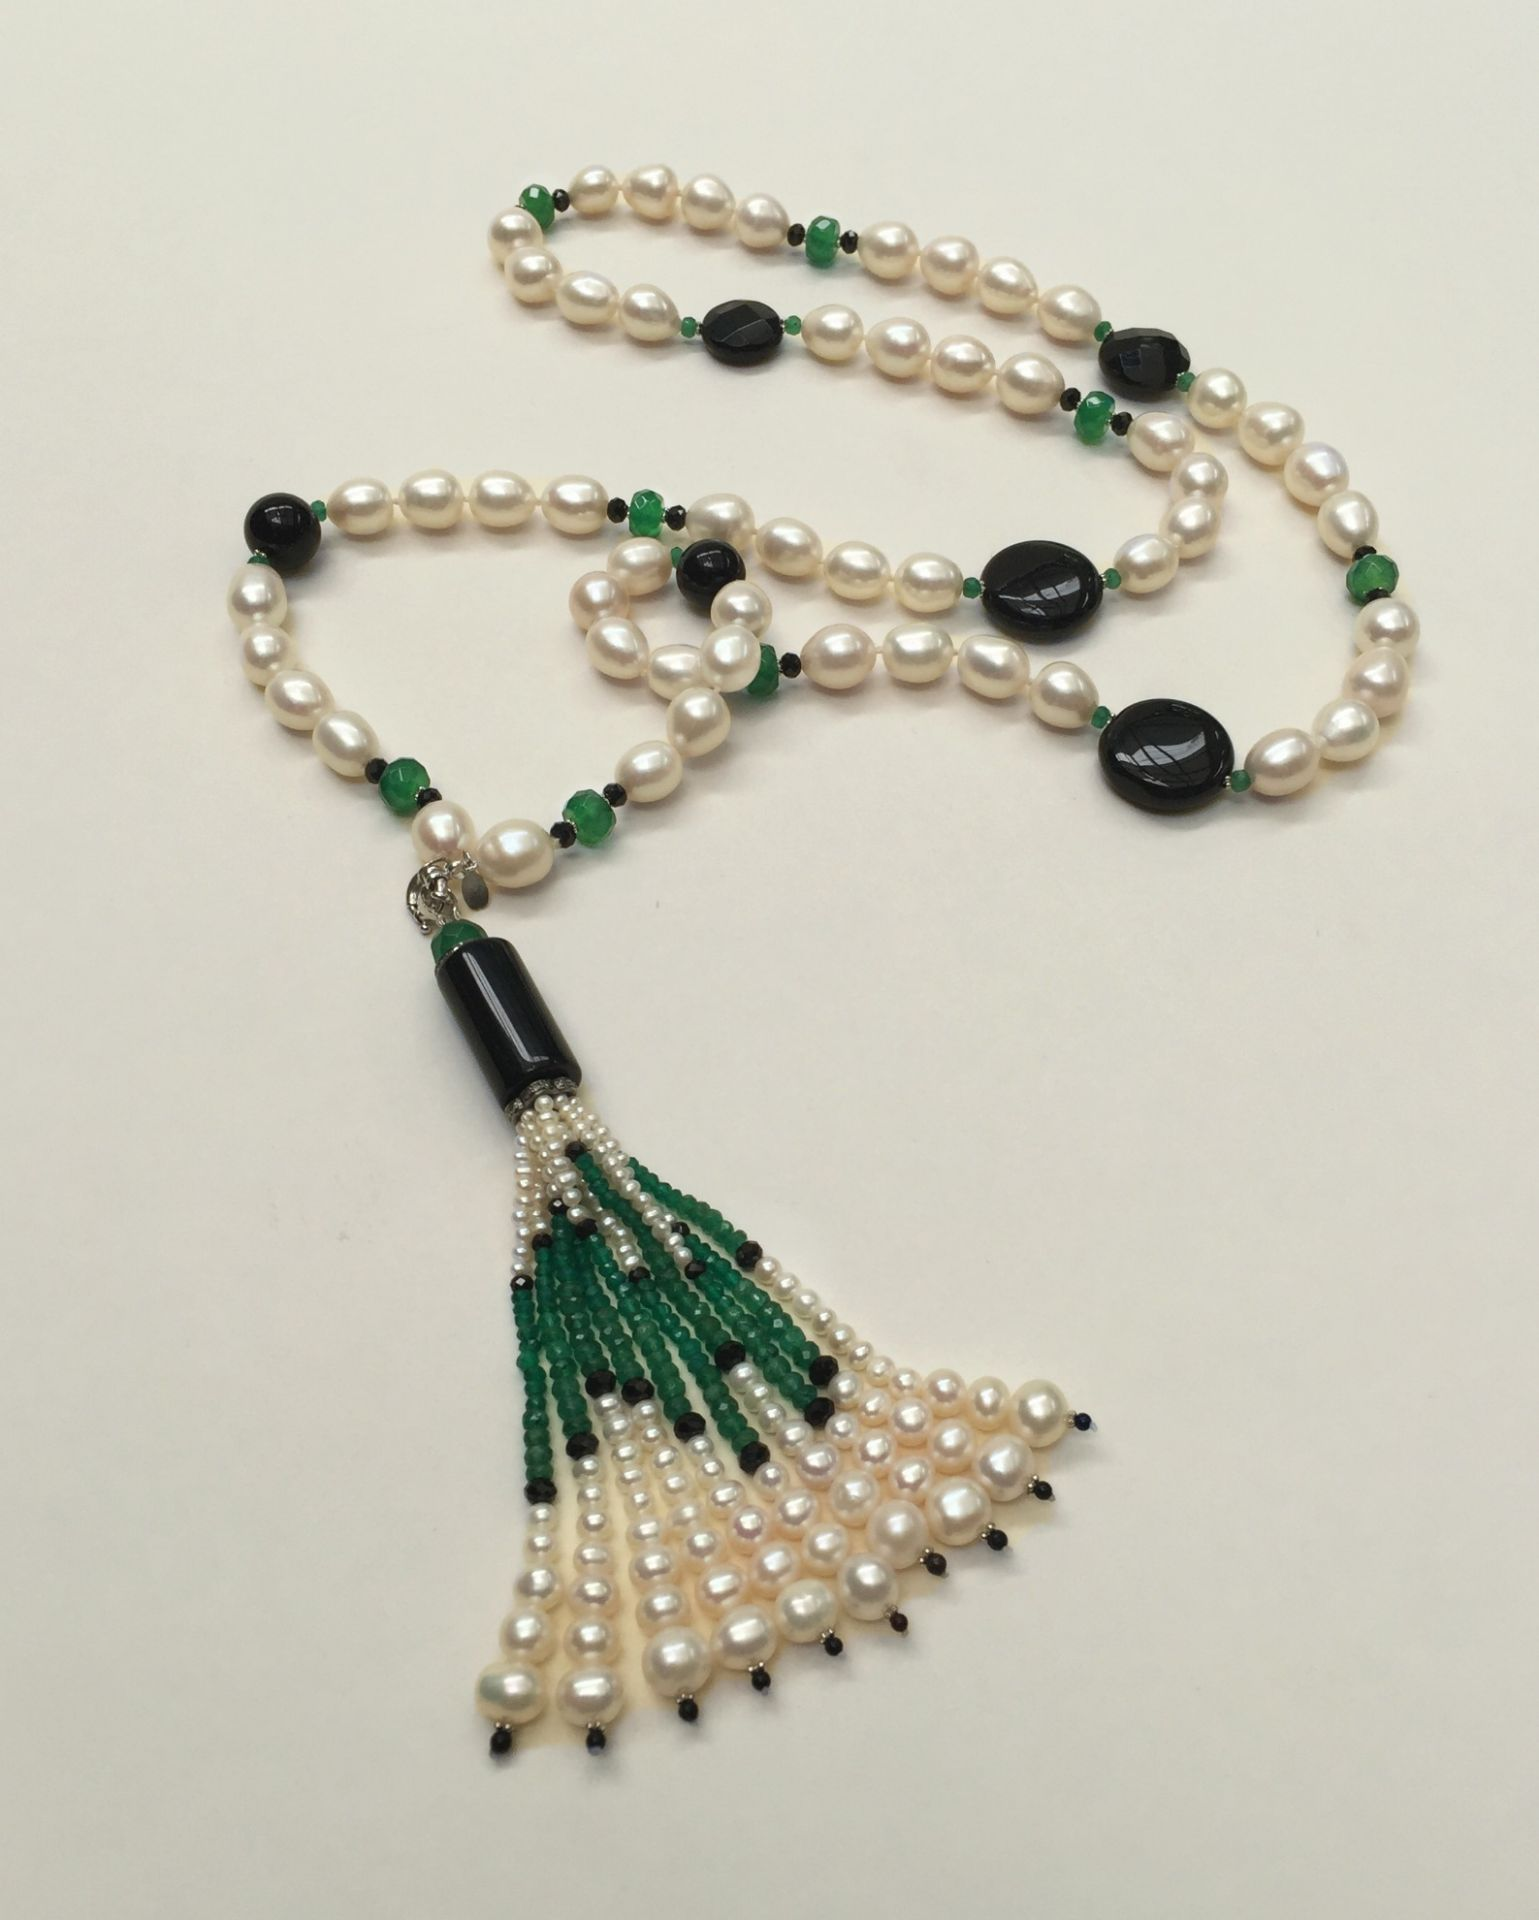 Black Onyx, Jade and Pearl Necklace with Tassel and 14 Karat White Gold Clasp